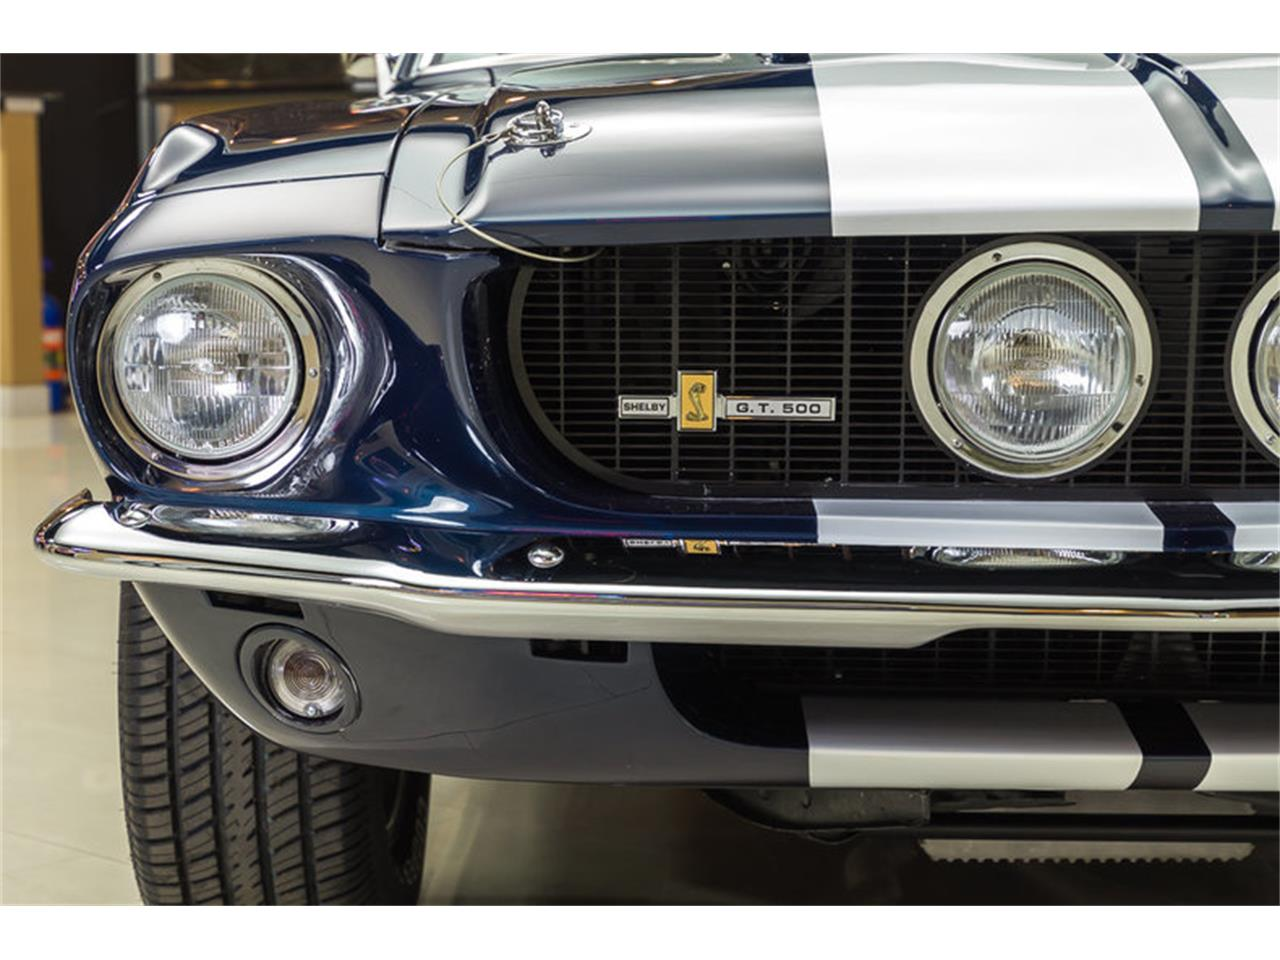 Large picture of 67 mustang fastback shelby gt500 recreation k9f0